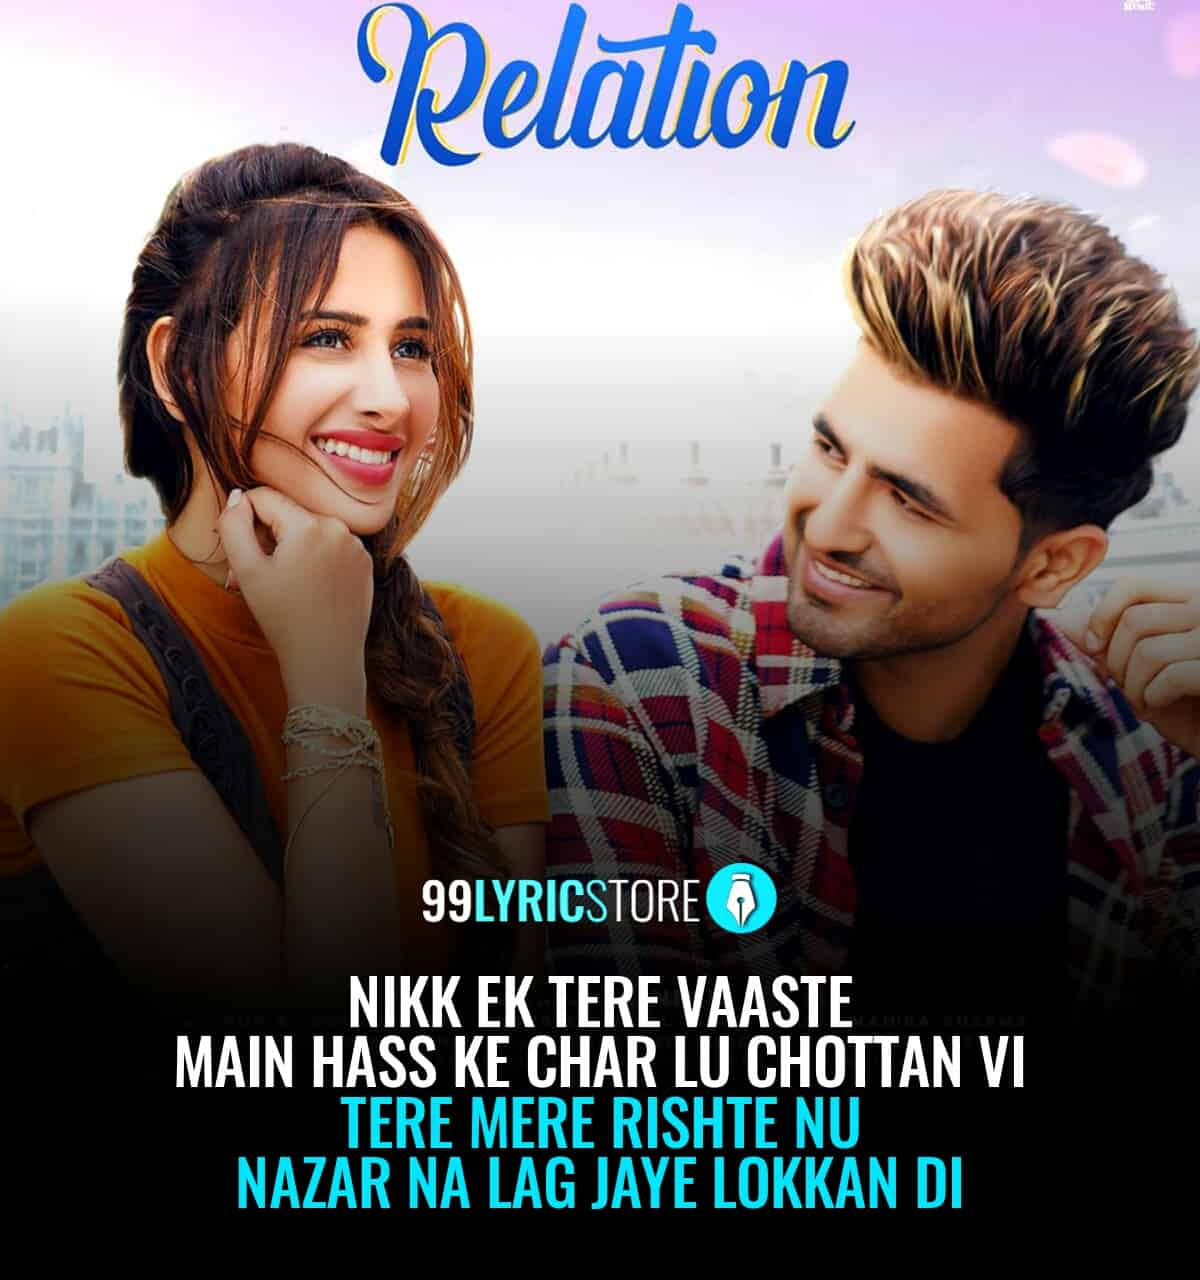 Relation Lyrics Punjabi song sung by Nikk ft. Mahira Sharma